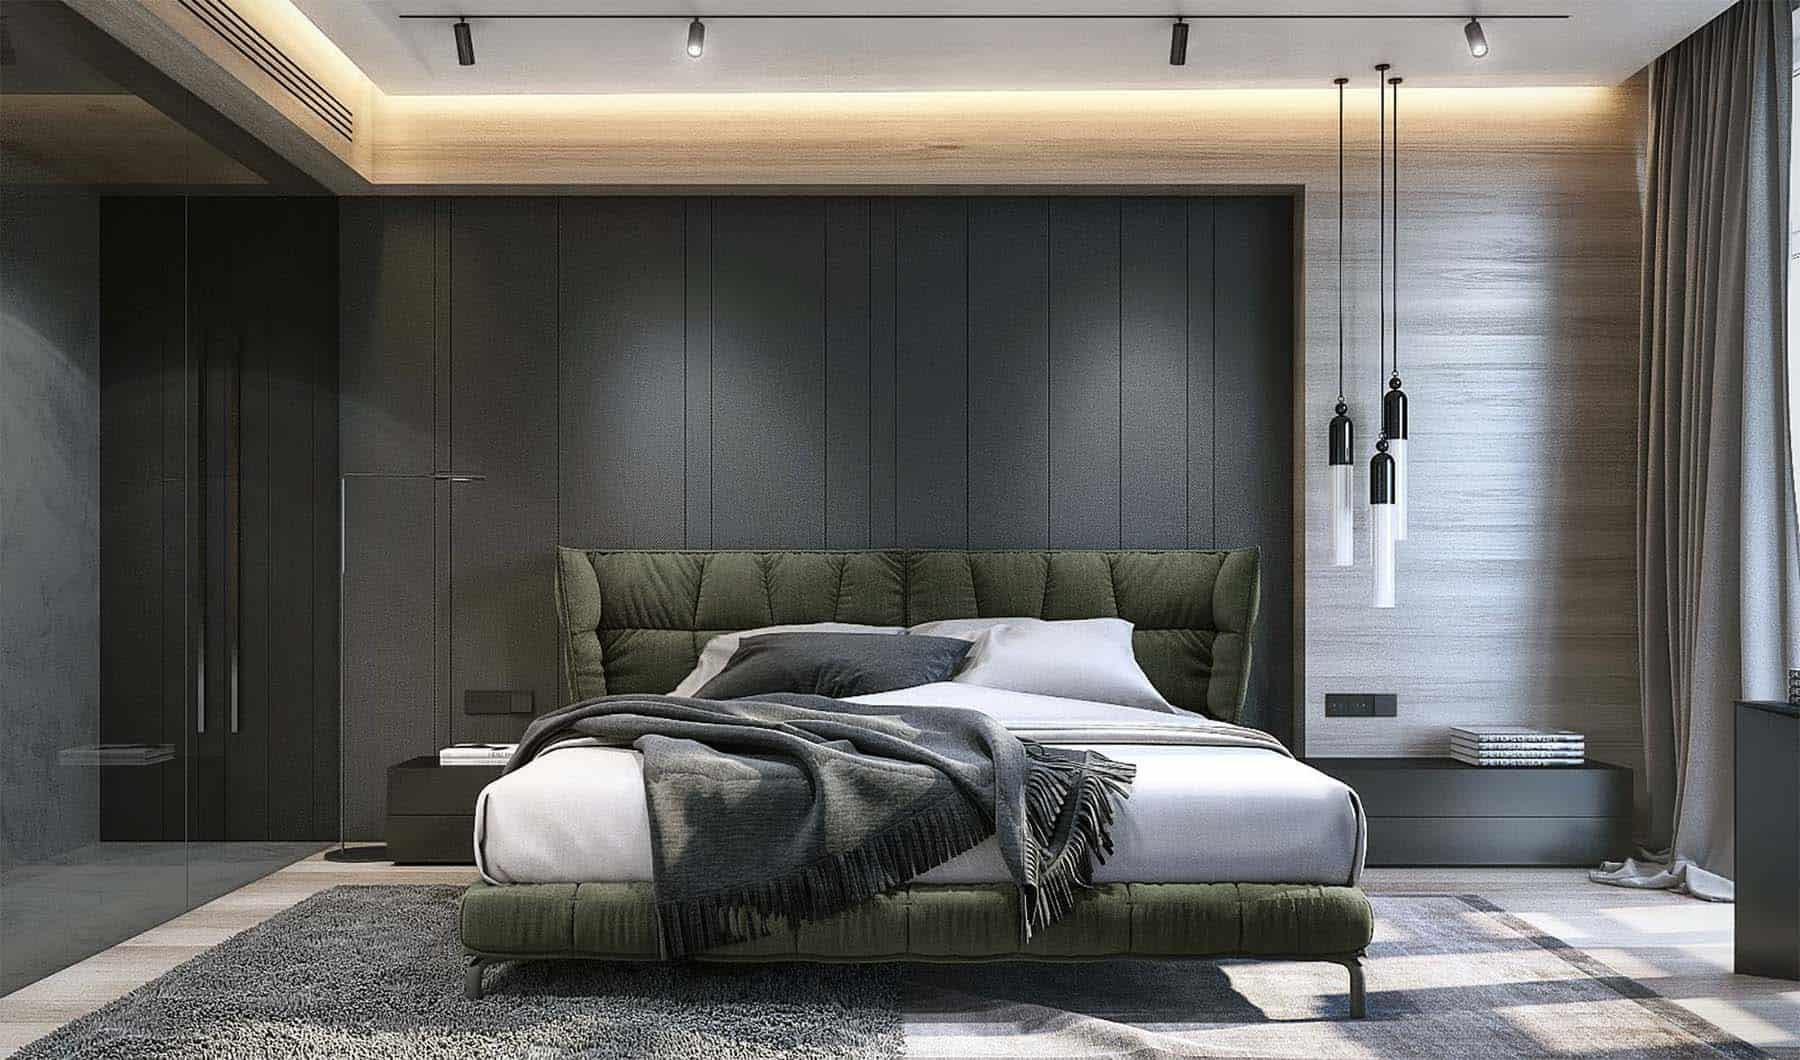 moern bedroom Modern bedroom ideas with a warm aesthetic